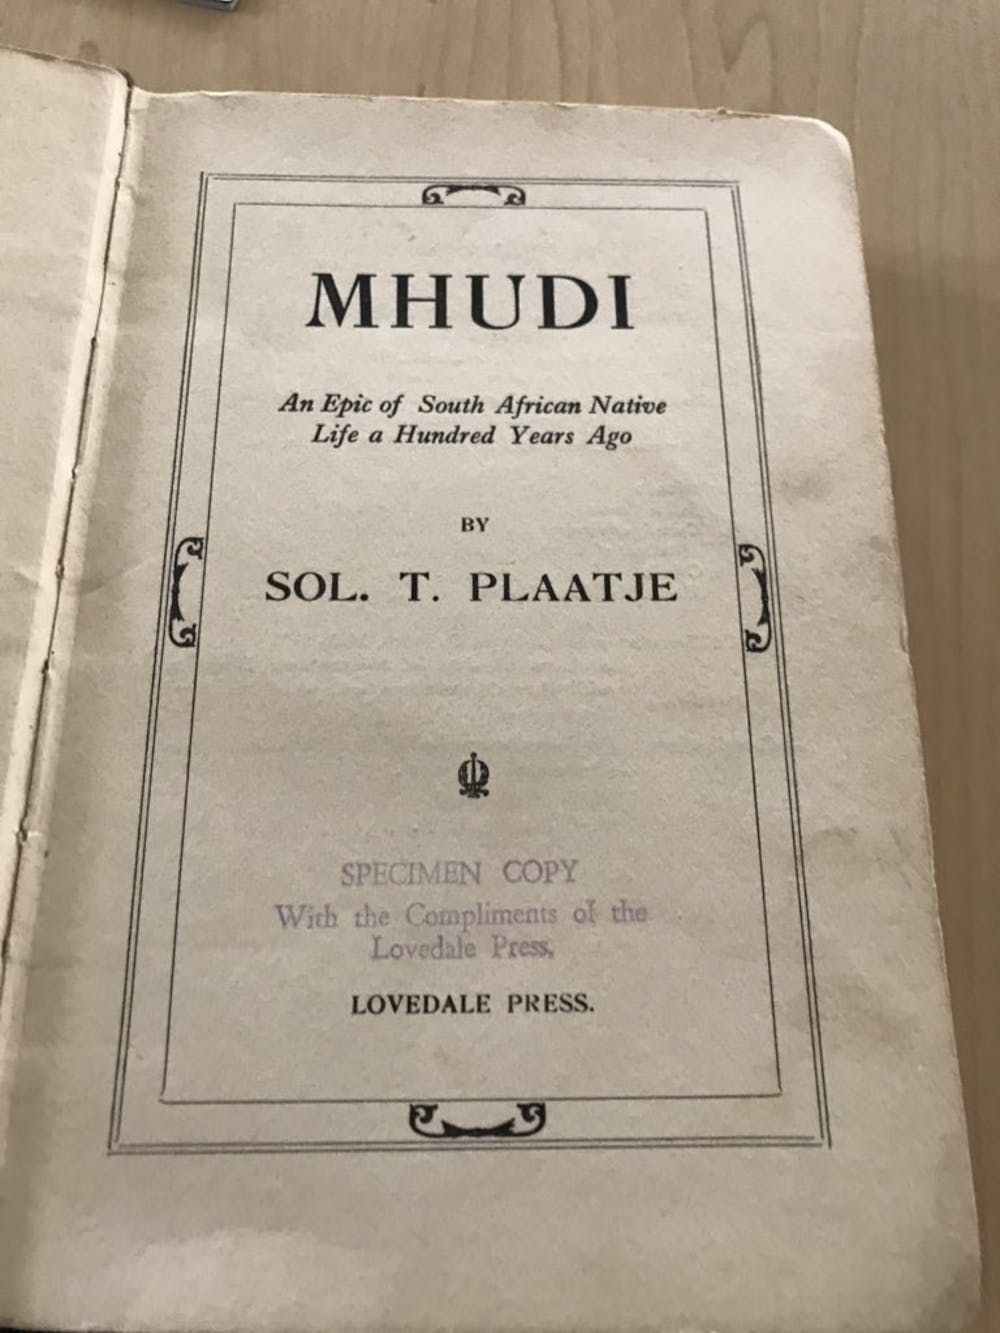 An old book open at the first page, with text in an illustrated frame reading, 'Mhudi - an epic of South African Native Life a Hundred Years Ago.'